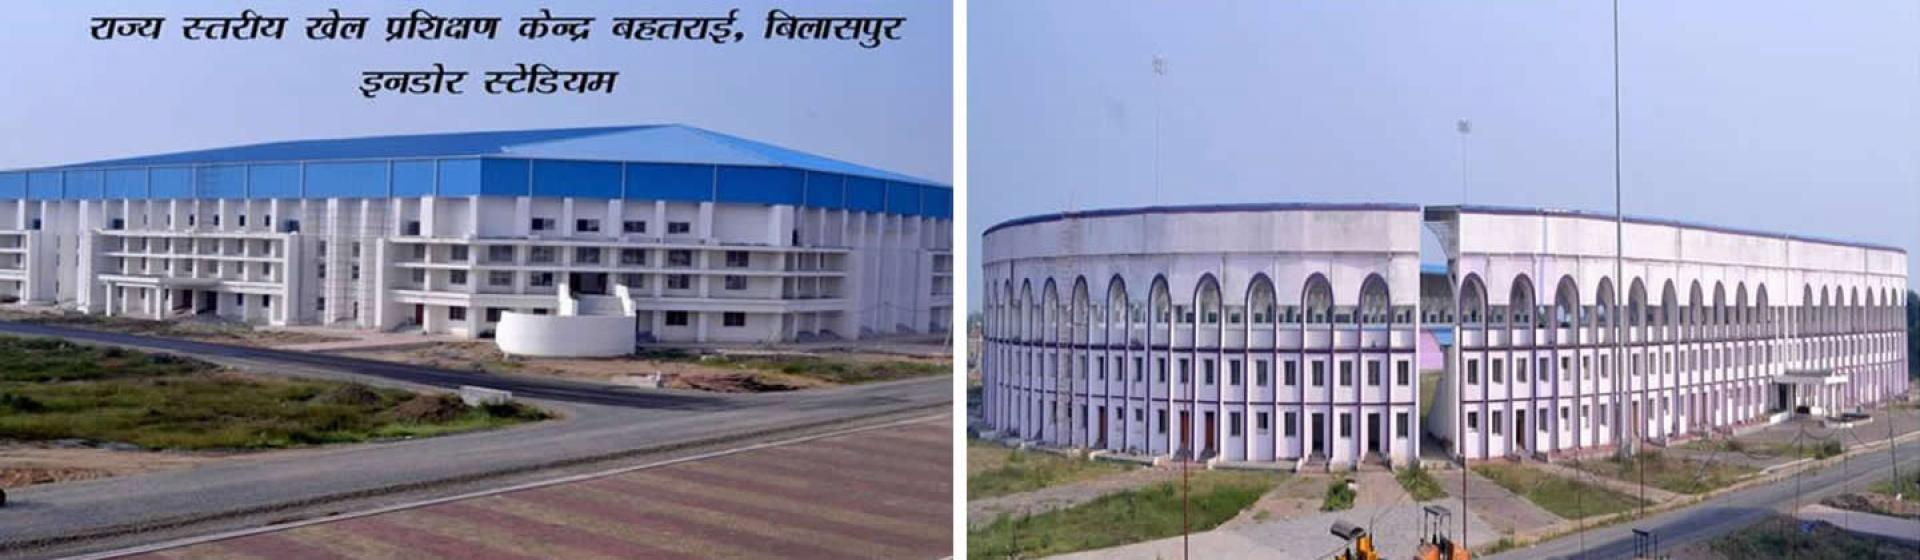 state level sports training center bahatarai, bilaspur indoor stadium